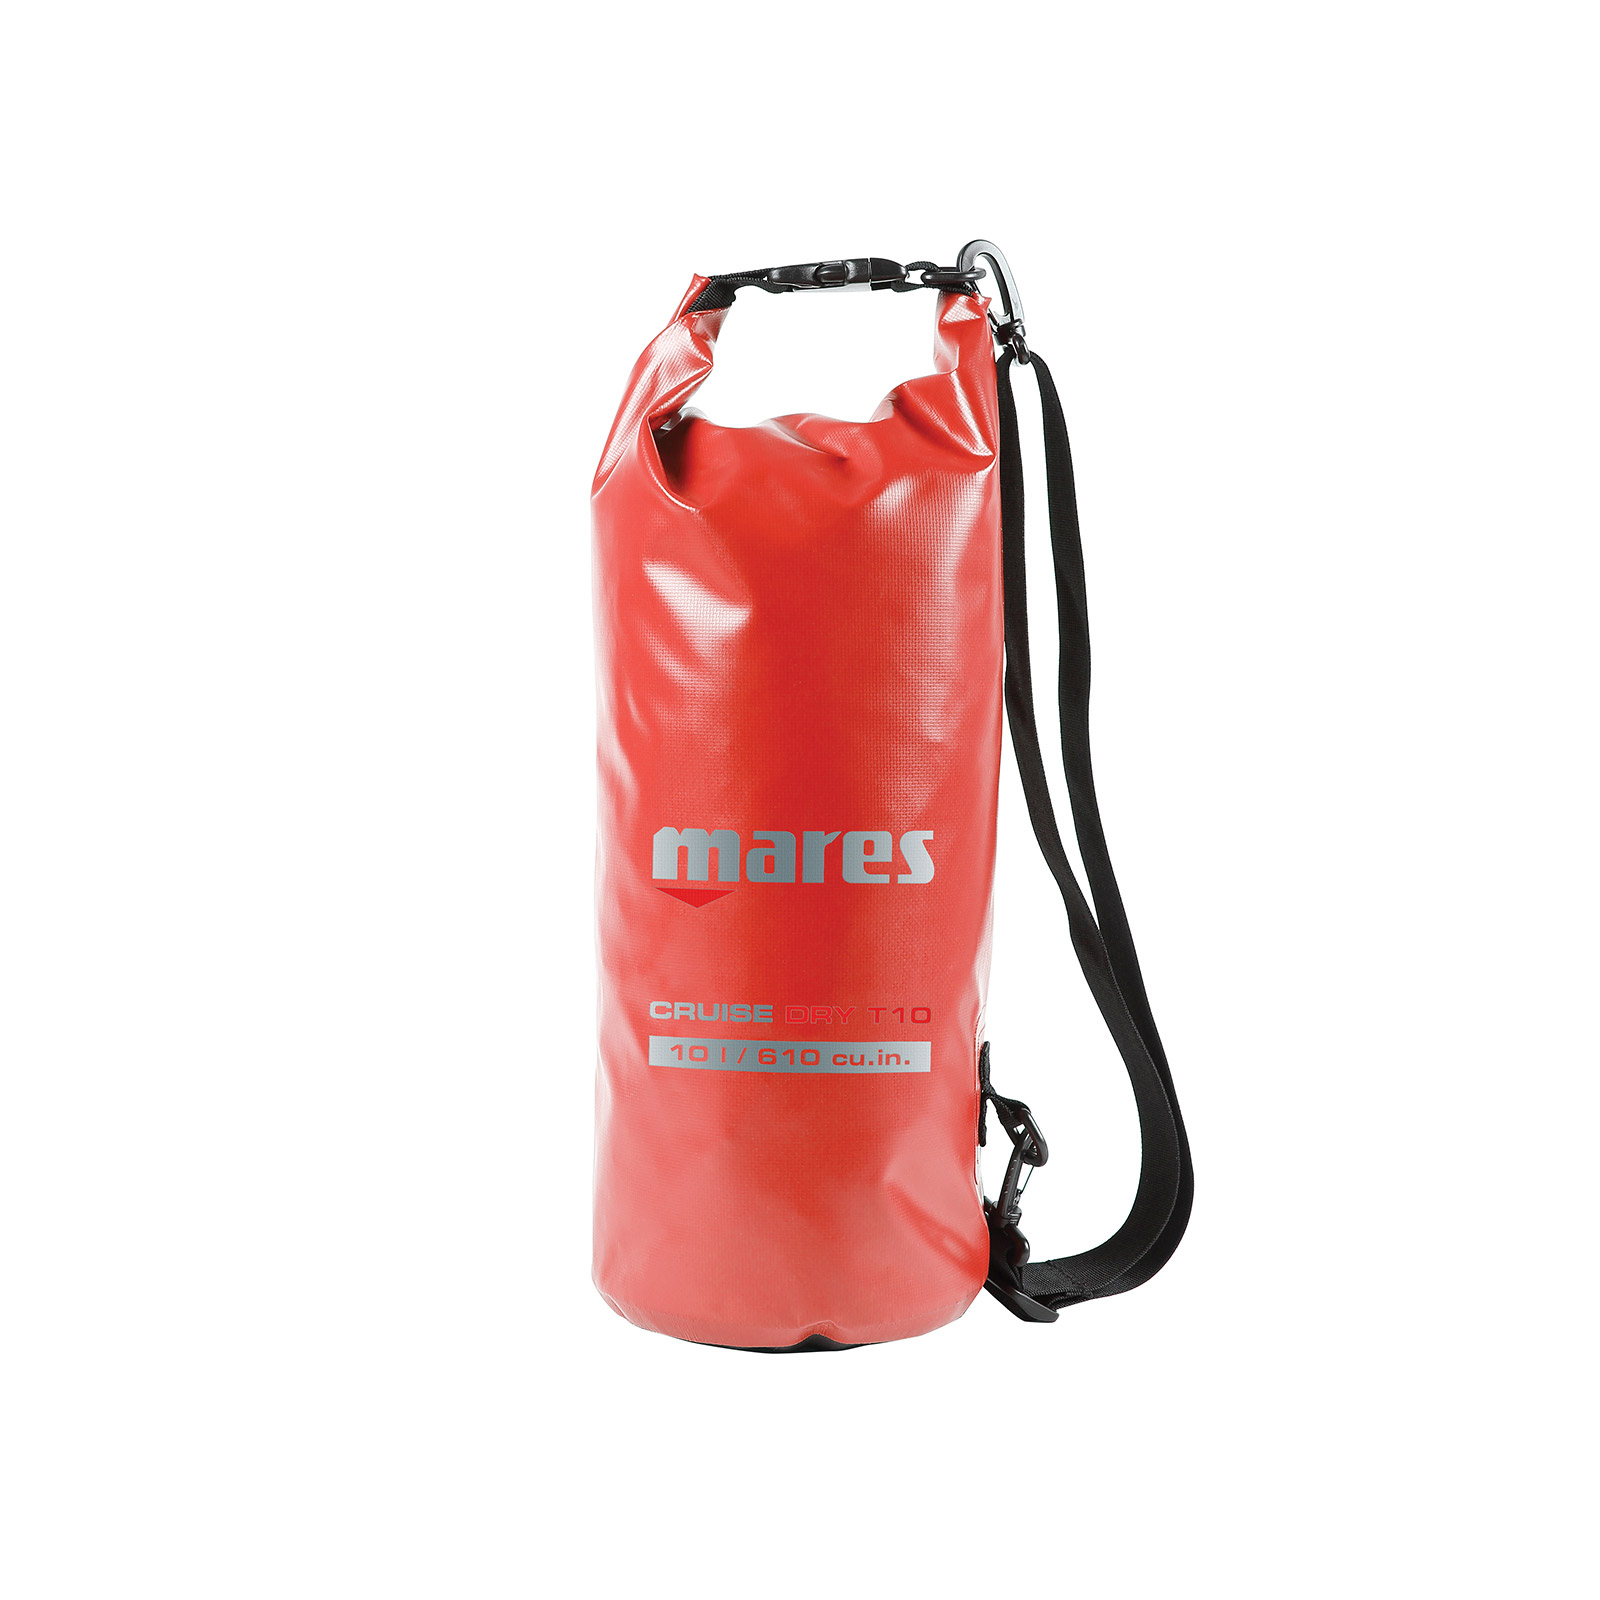 MARES - Cruise Drybag T10 Trockensack